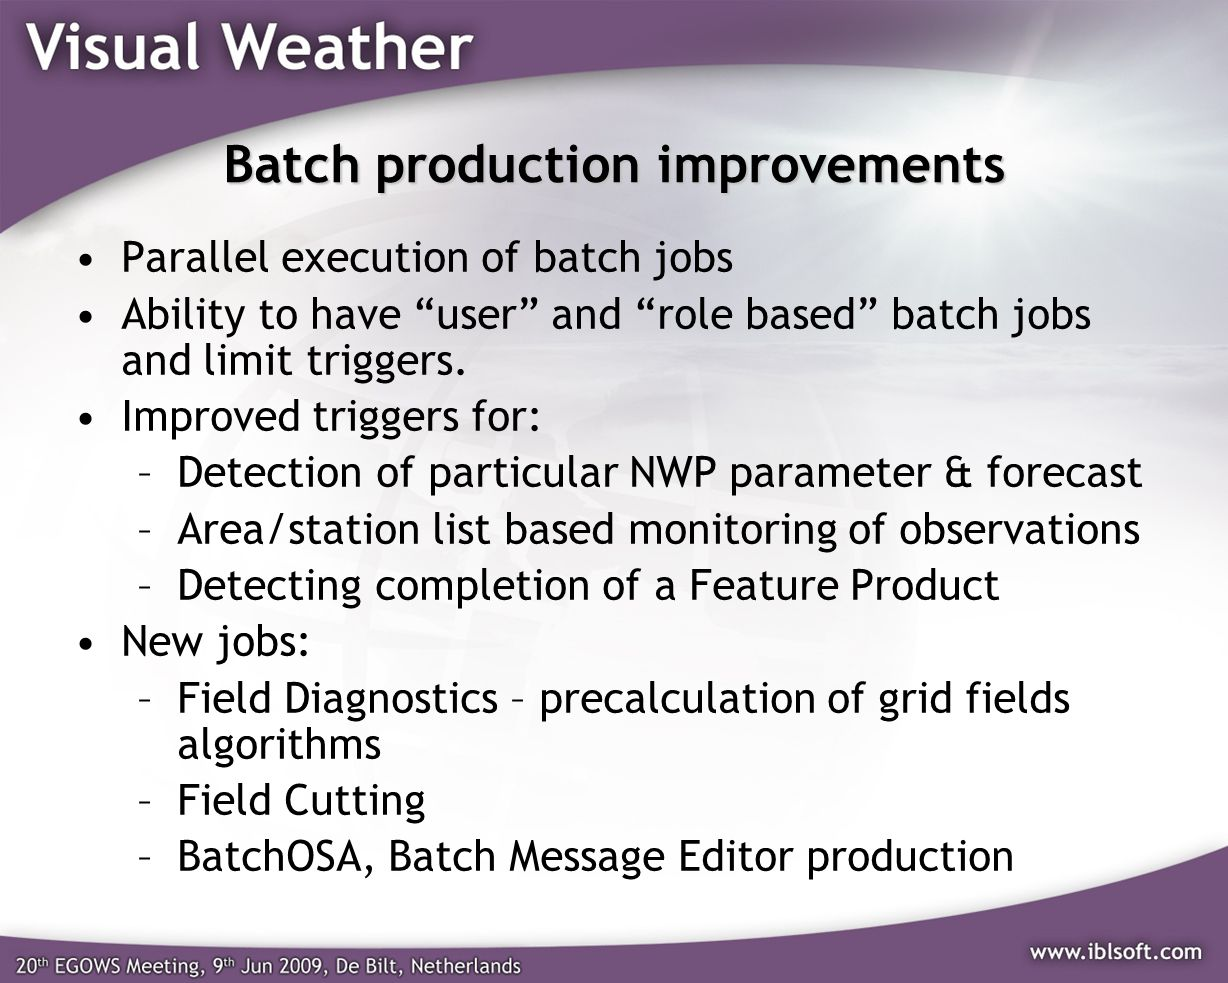 Batch production improvements